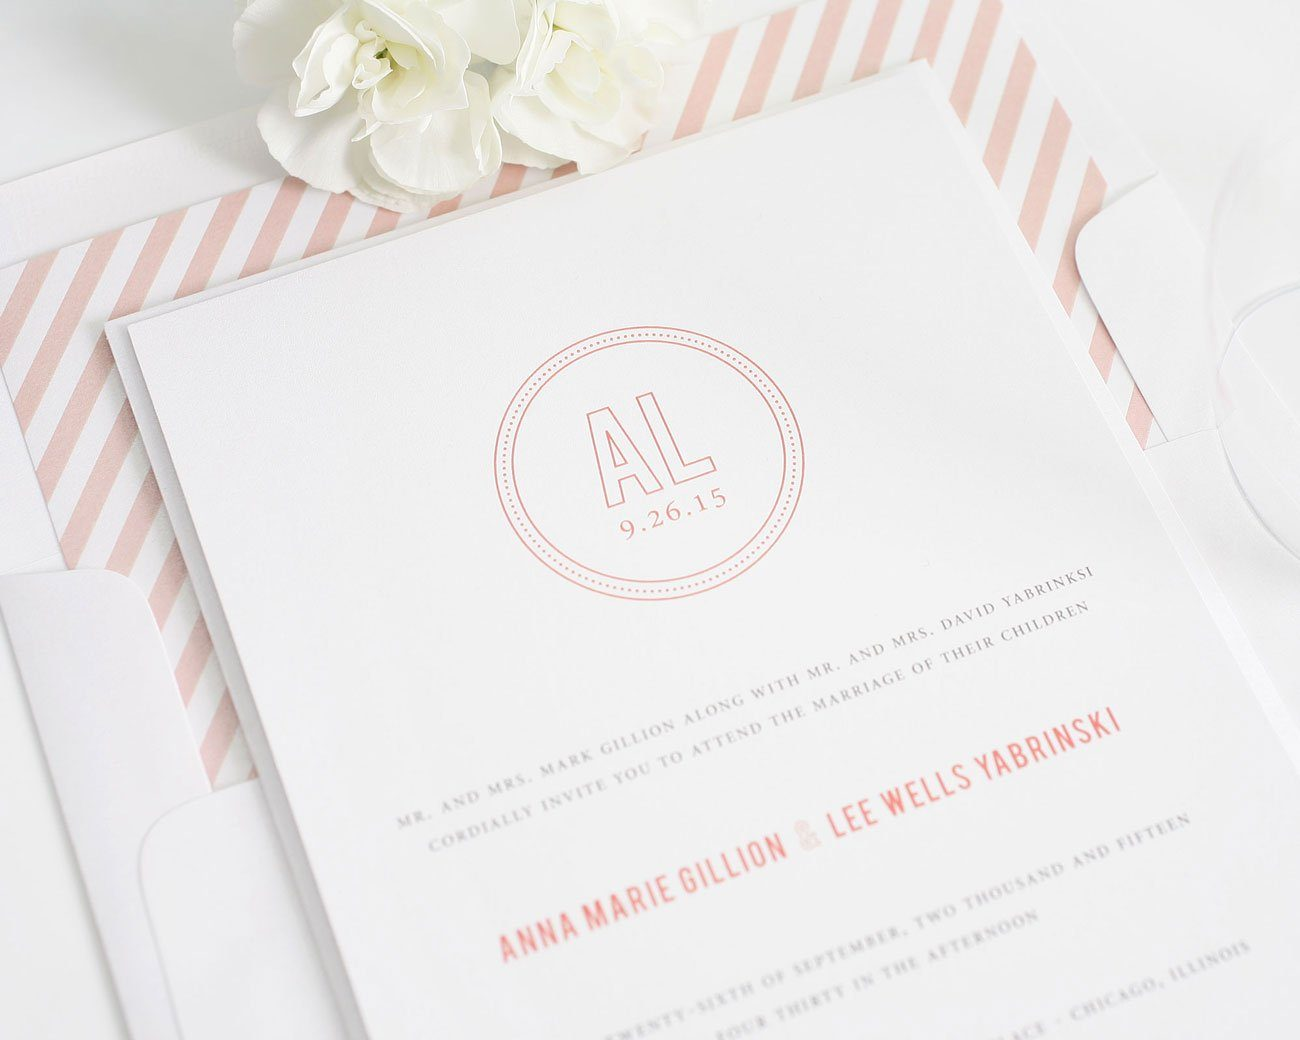 coral wedding invitations with a circle monogram